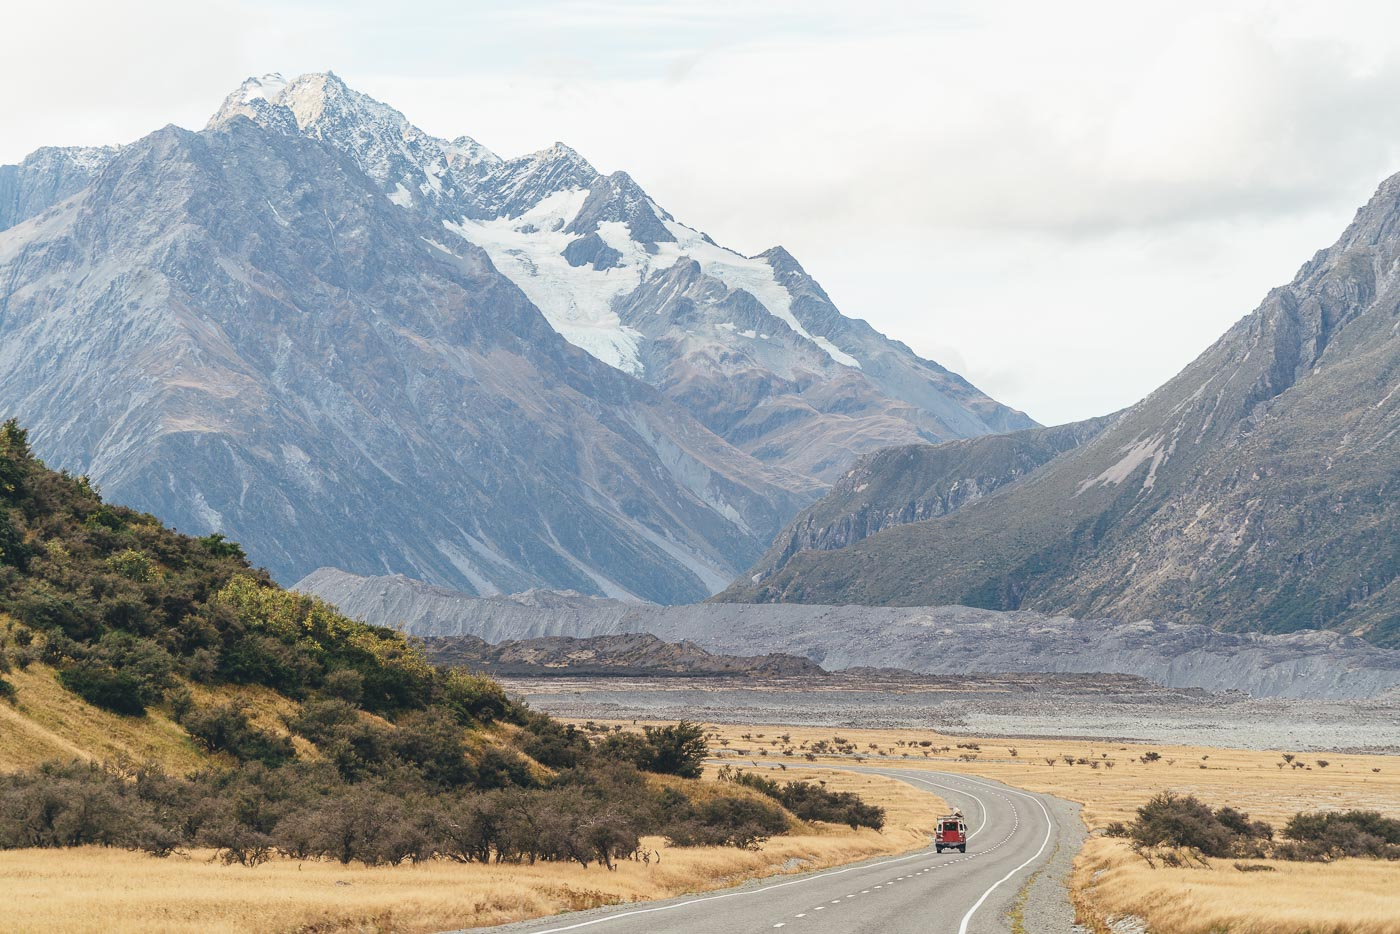 Deuce Rover on the way to the Tasman glacier in the Mount Cook National Park.